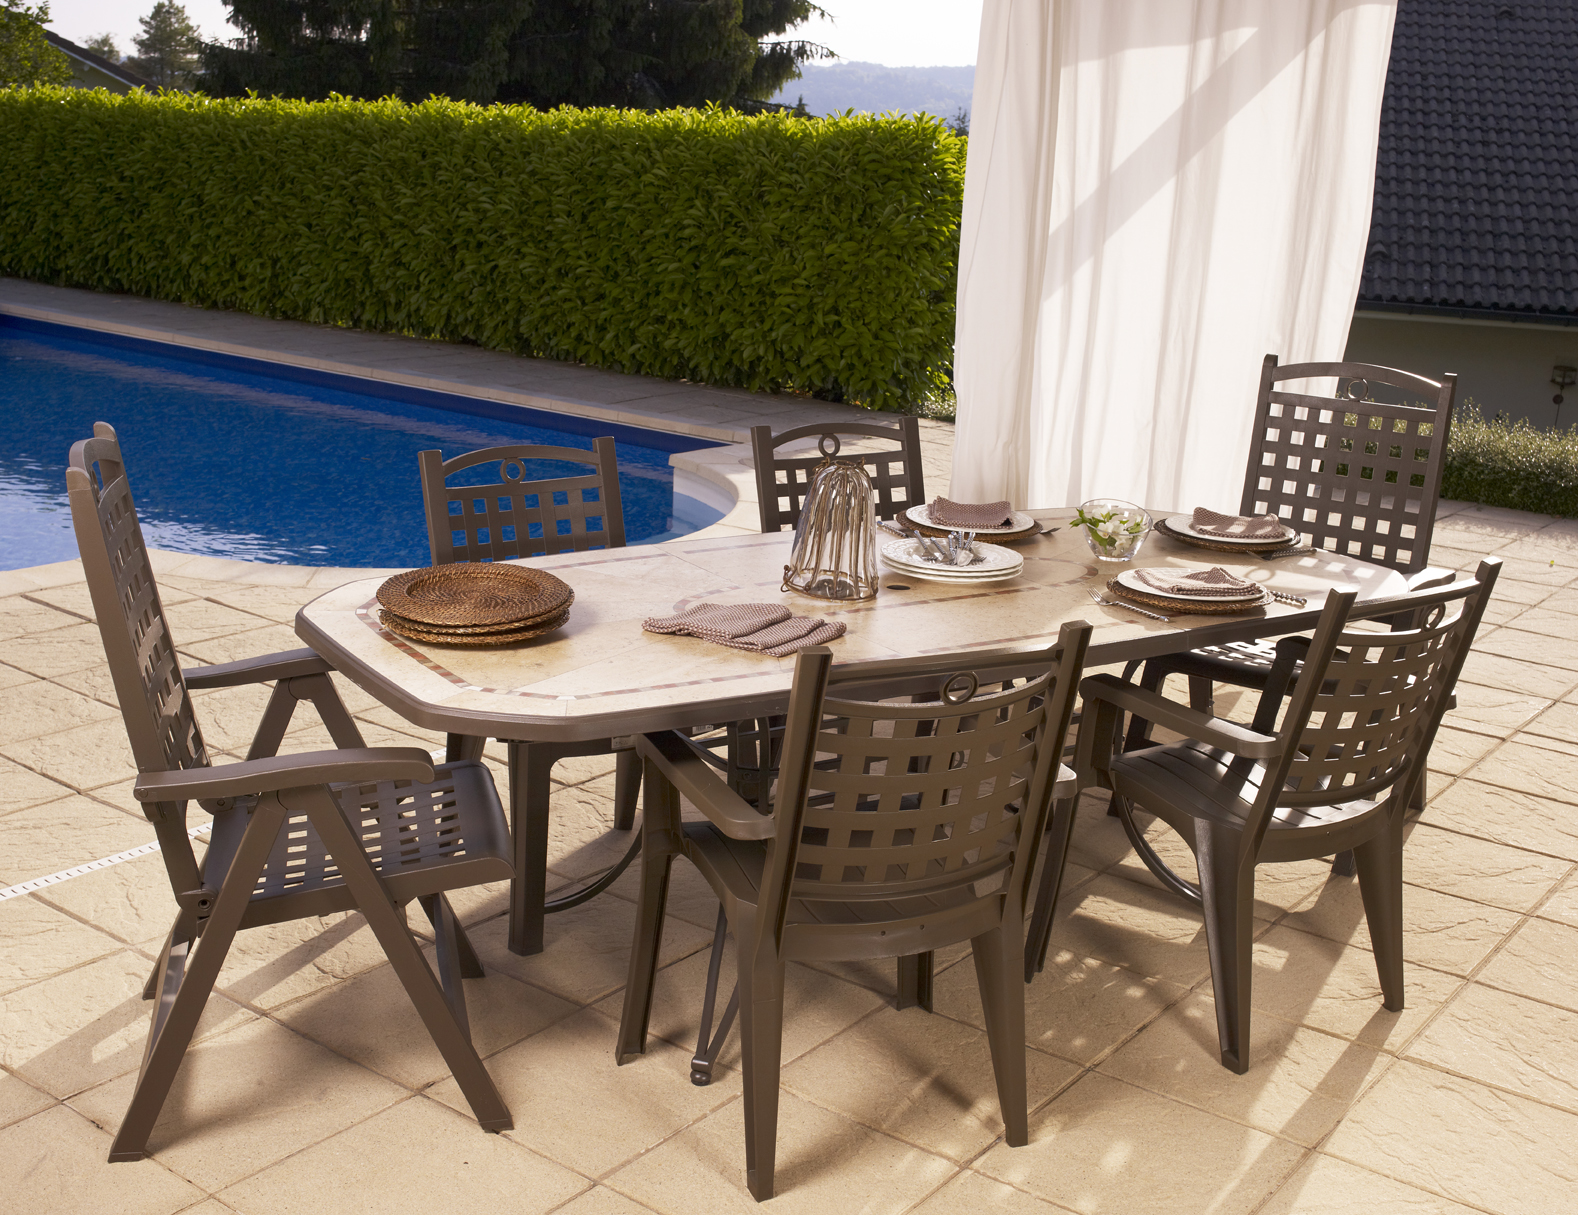 Grosfillex salon complet table amalfi bronze 4 fauteuils bo for Salon de jardin grofilex